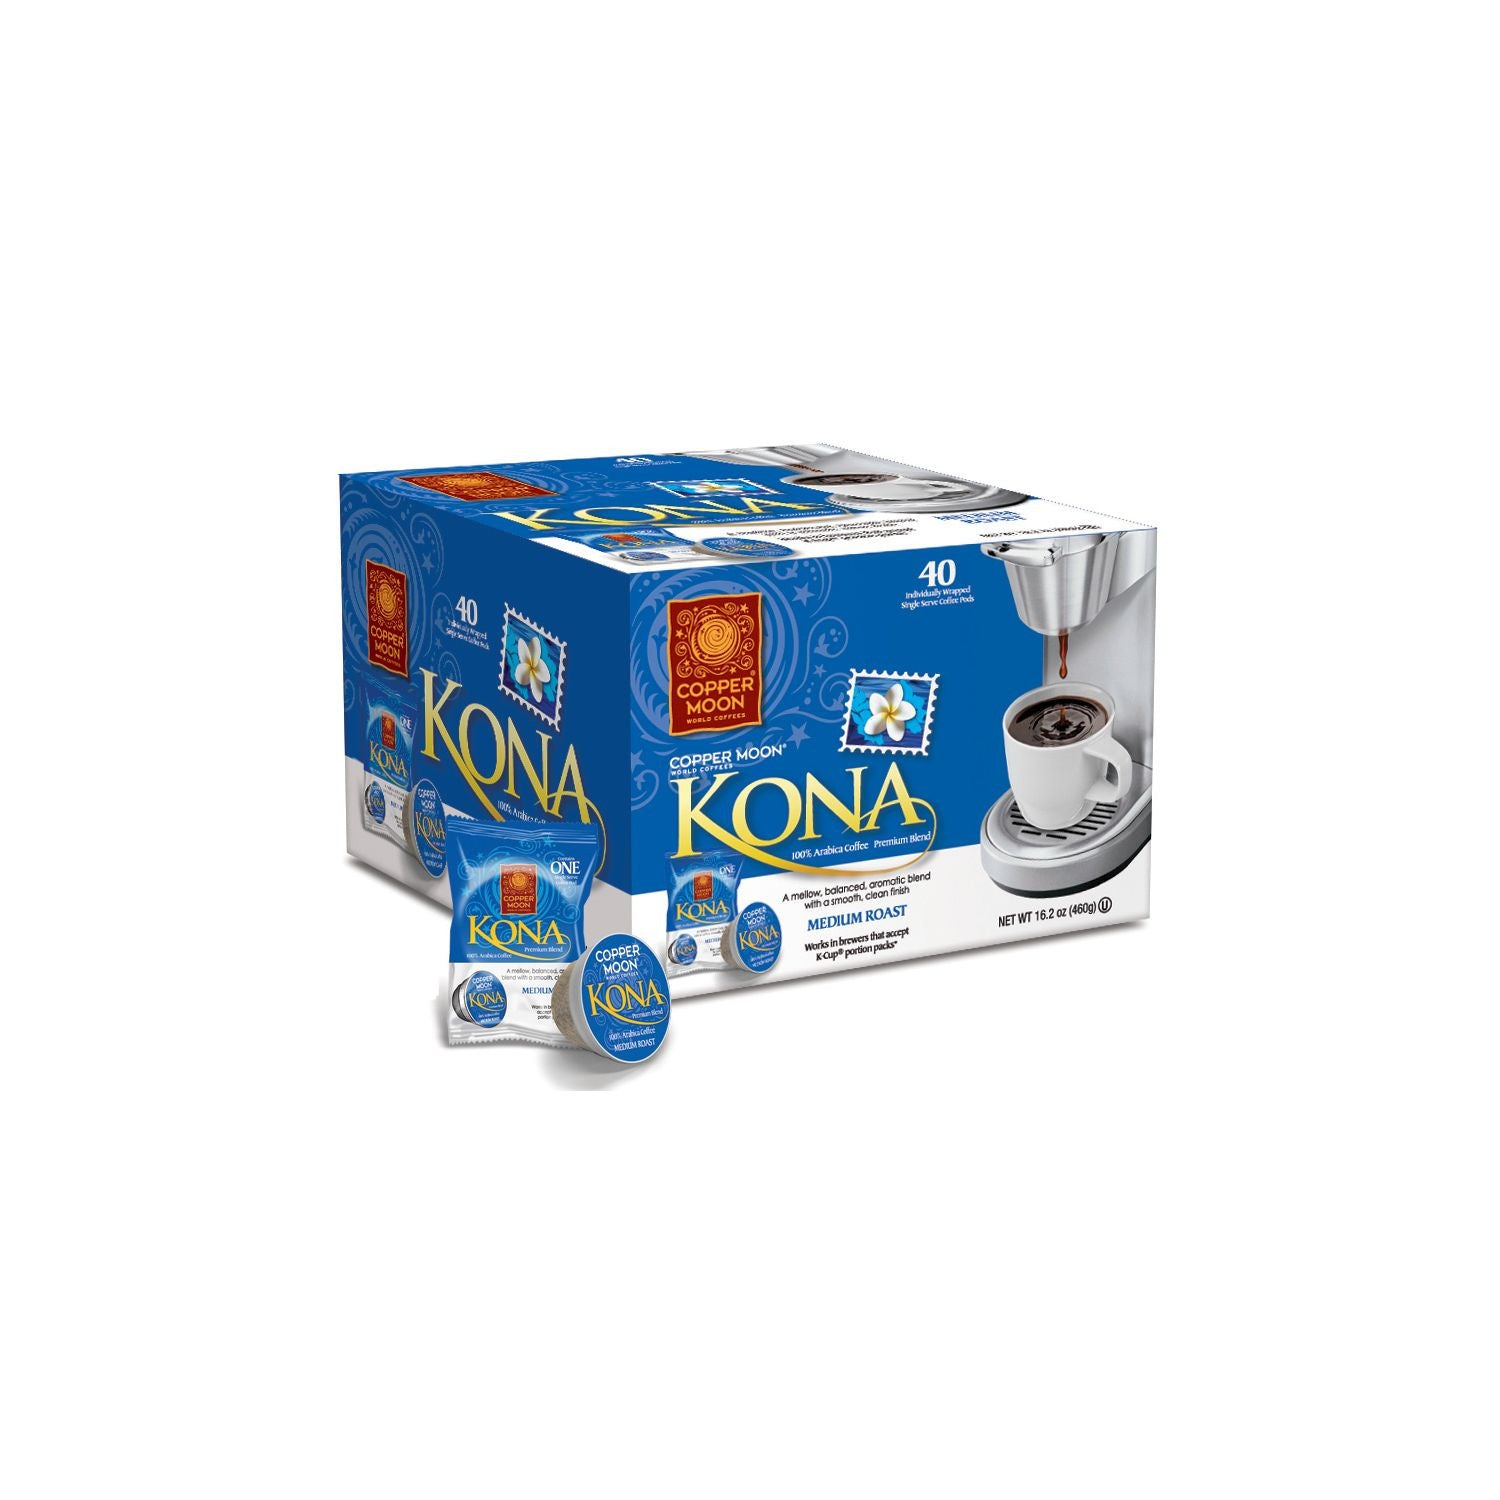 Copper Moon Kona Coffee, Single Serve (80 ct.)